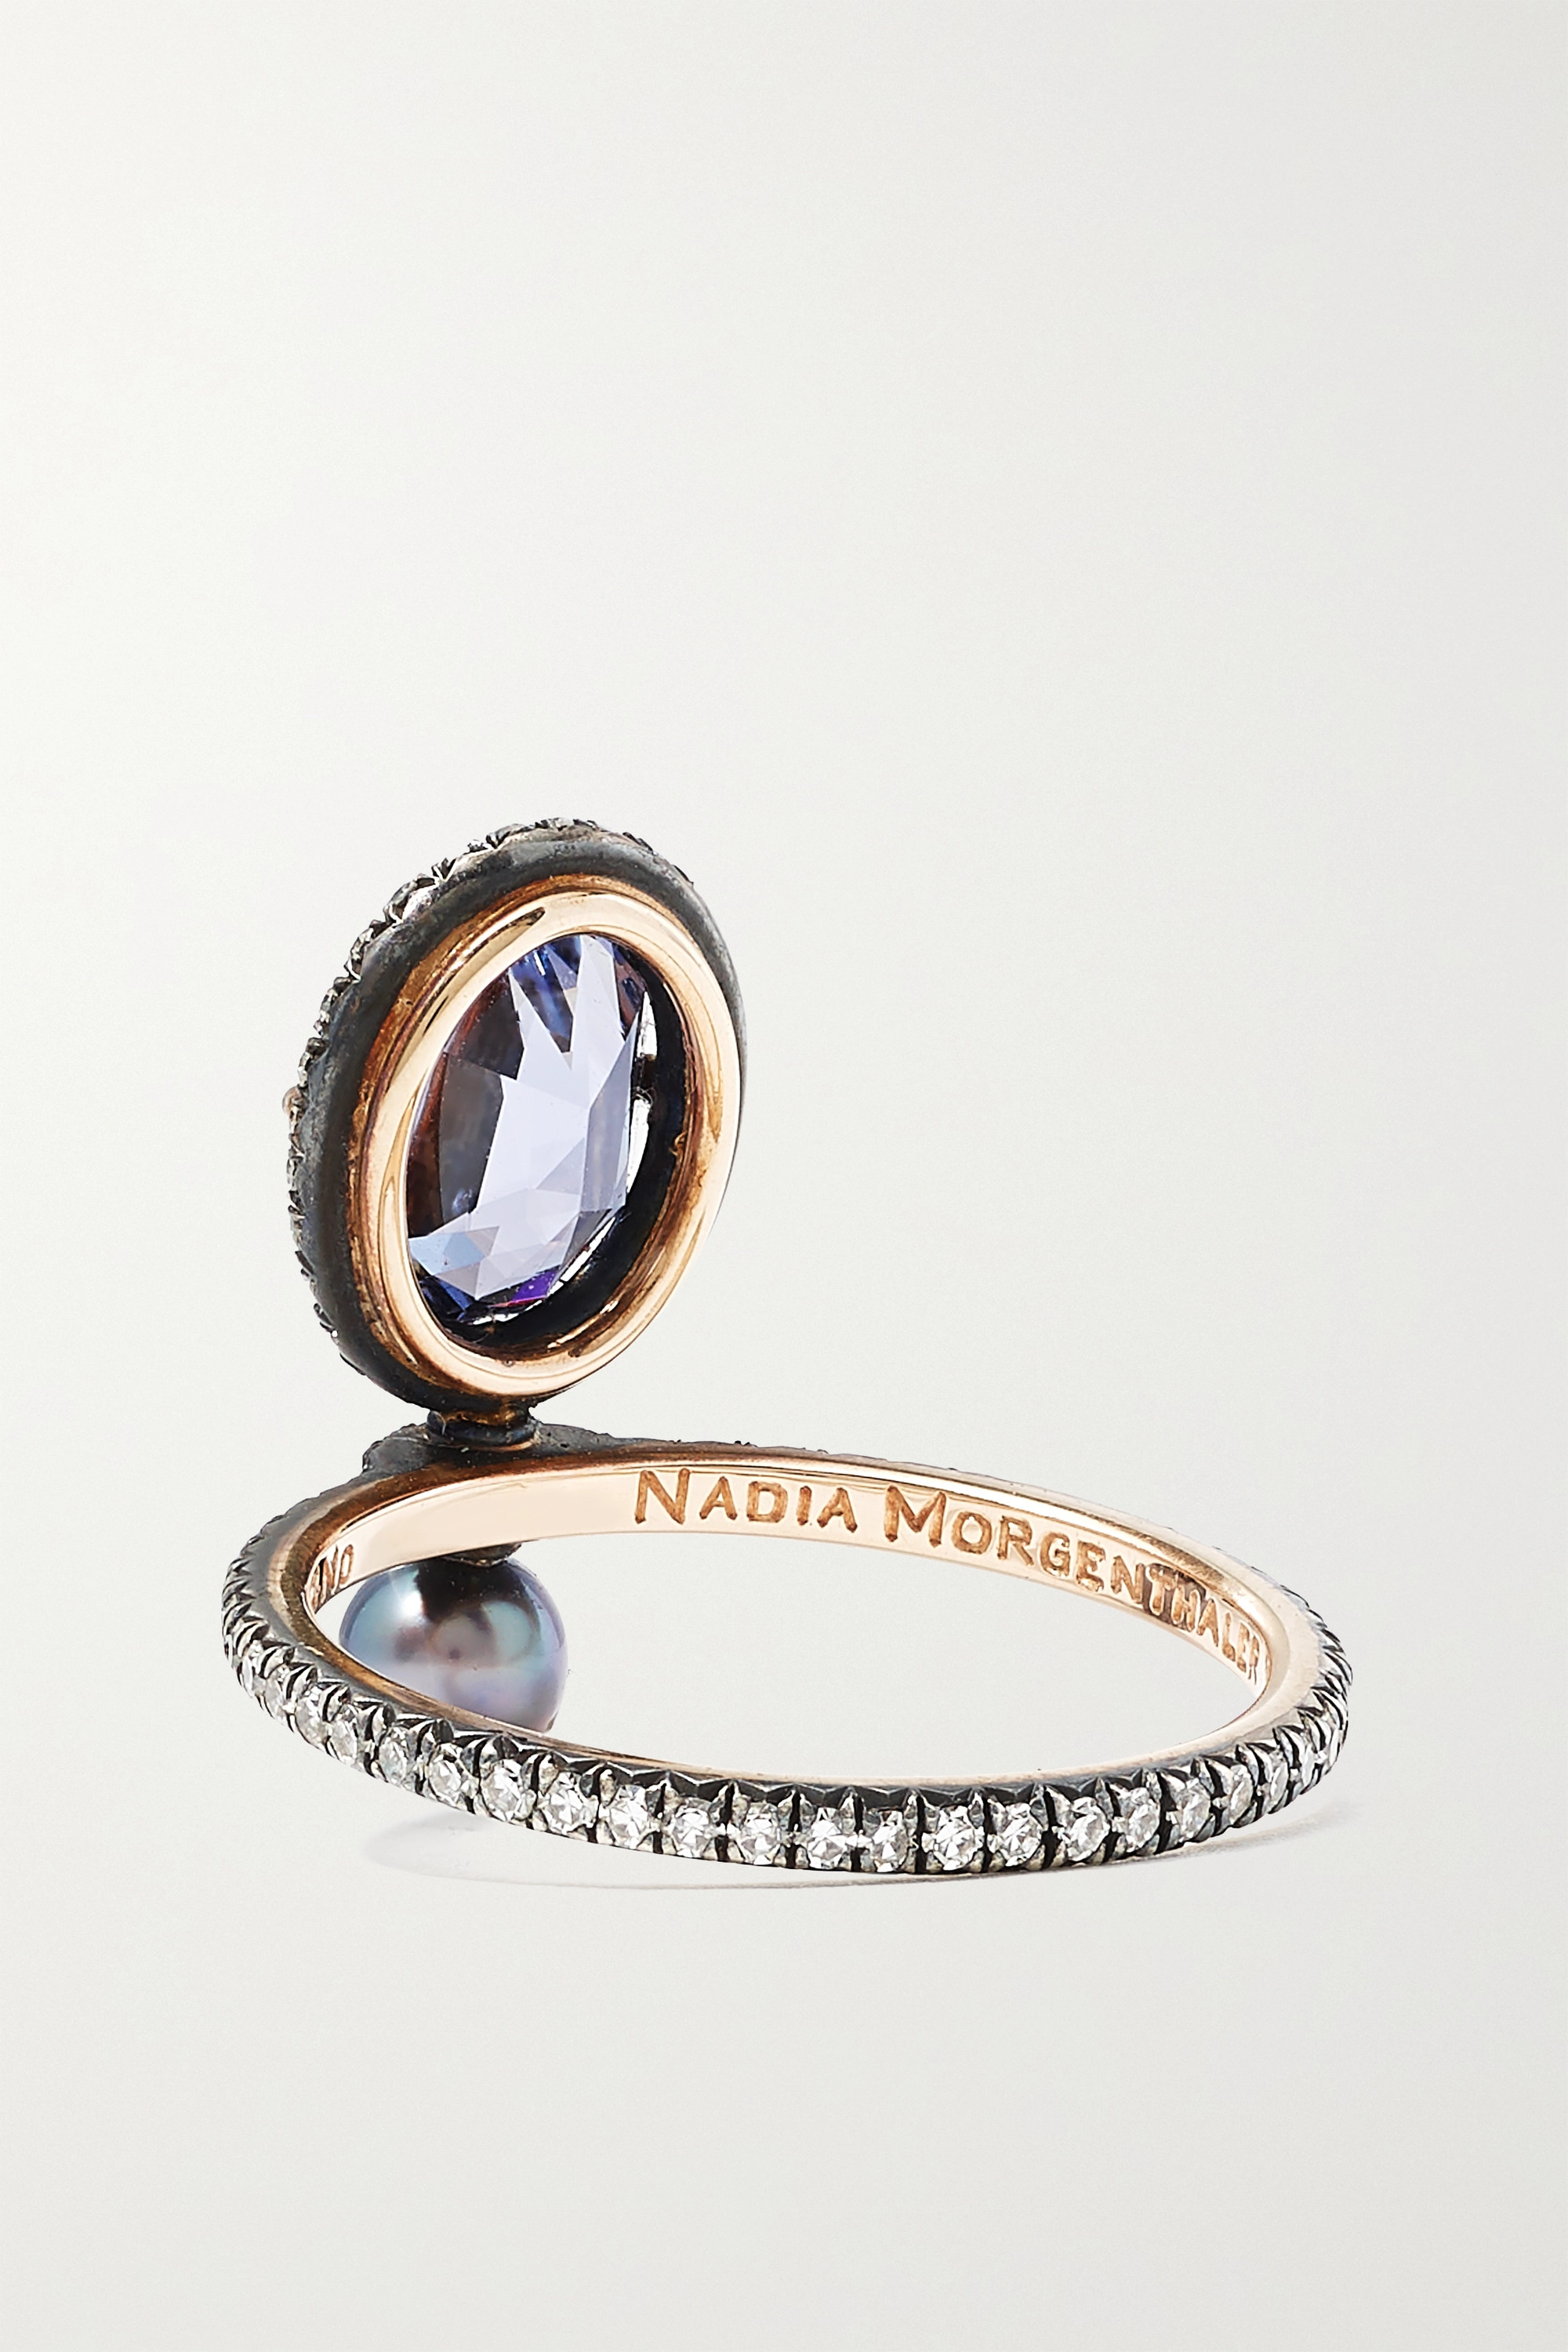 Nadia Morgenthaler + NET SUSTAIN 18-karat recycled red gold and blackened sterling silver multi-stone ring